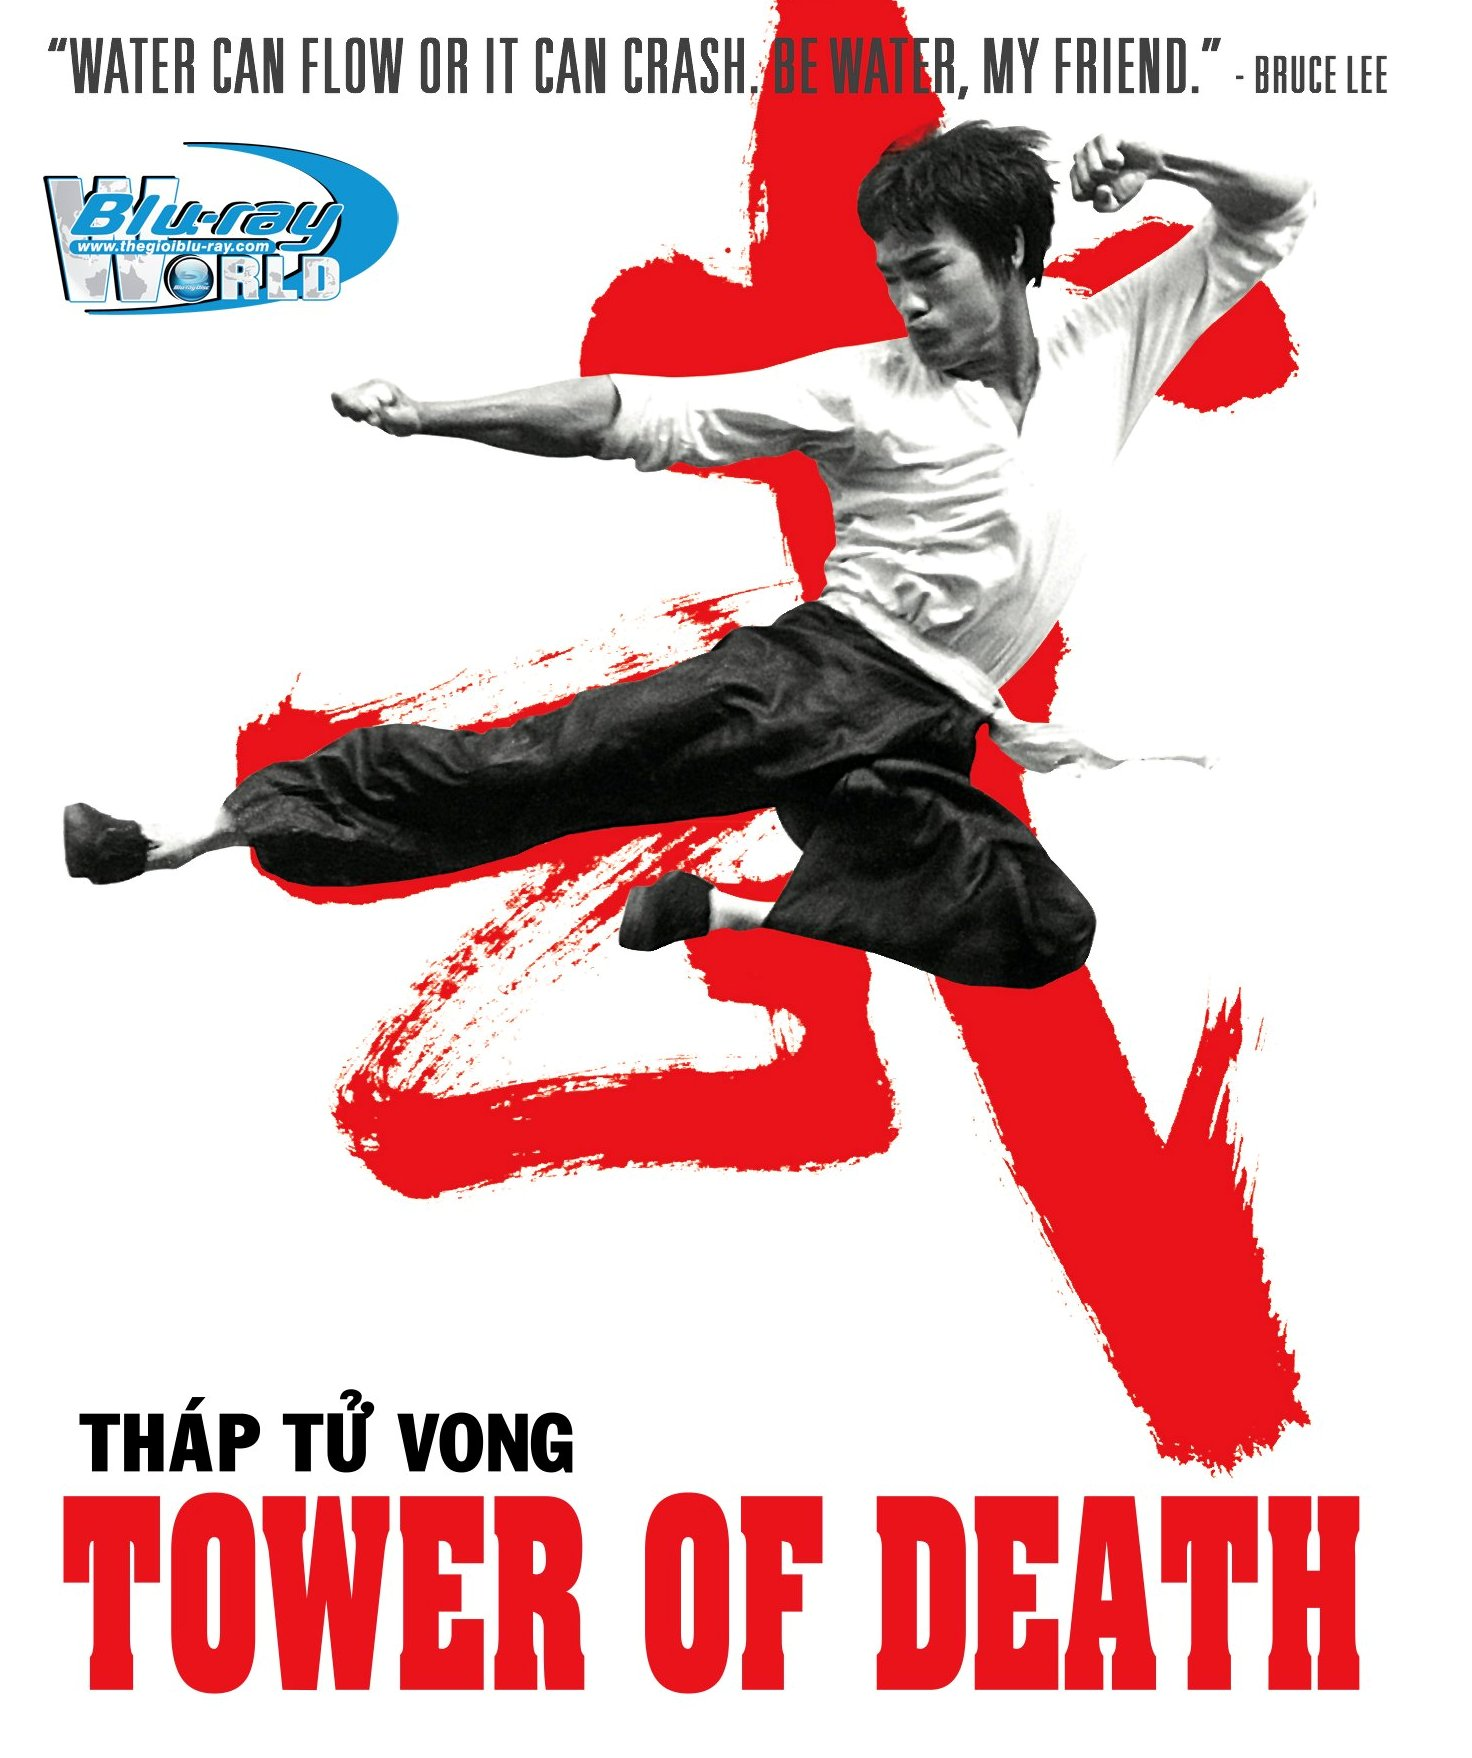 B1470. Bruce Lee - Tower of Death 1981 - THÁP TỬ VONG 2D 25G (DTS-HD MA 5.1)